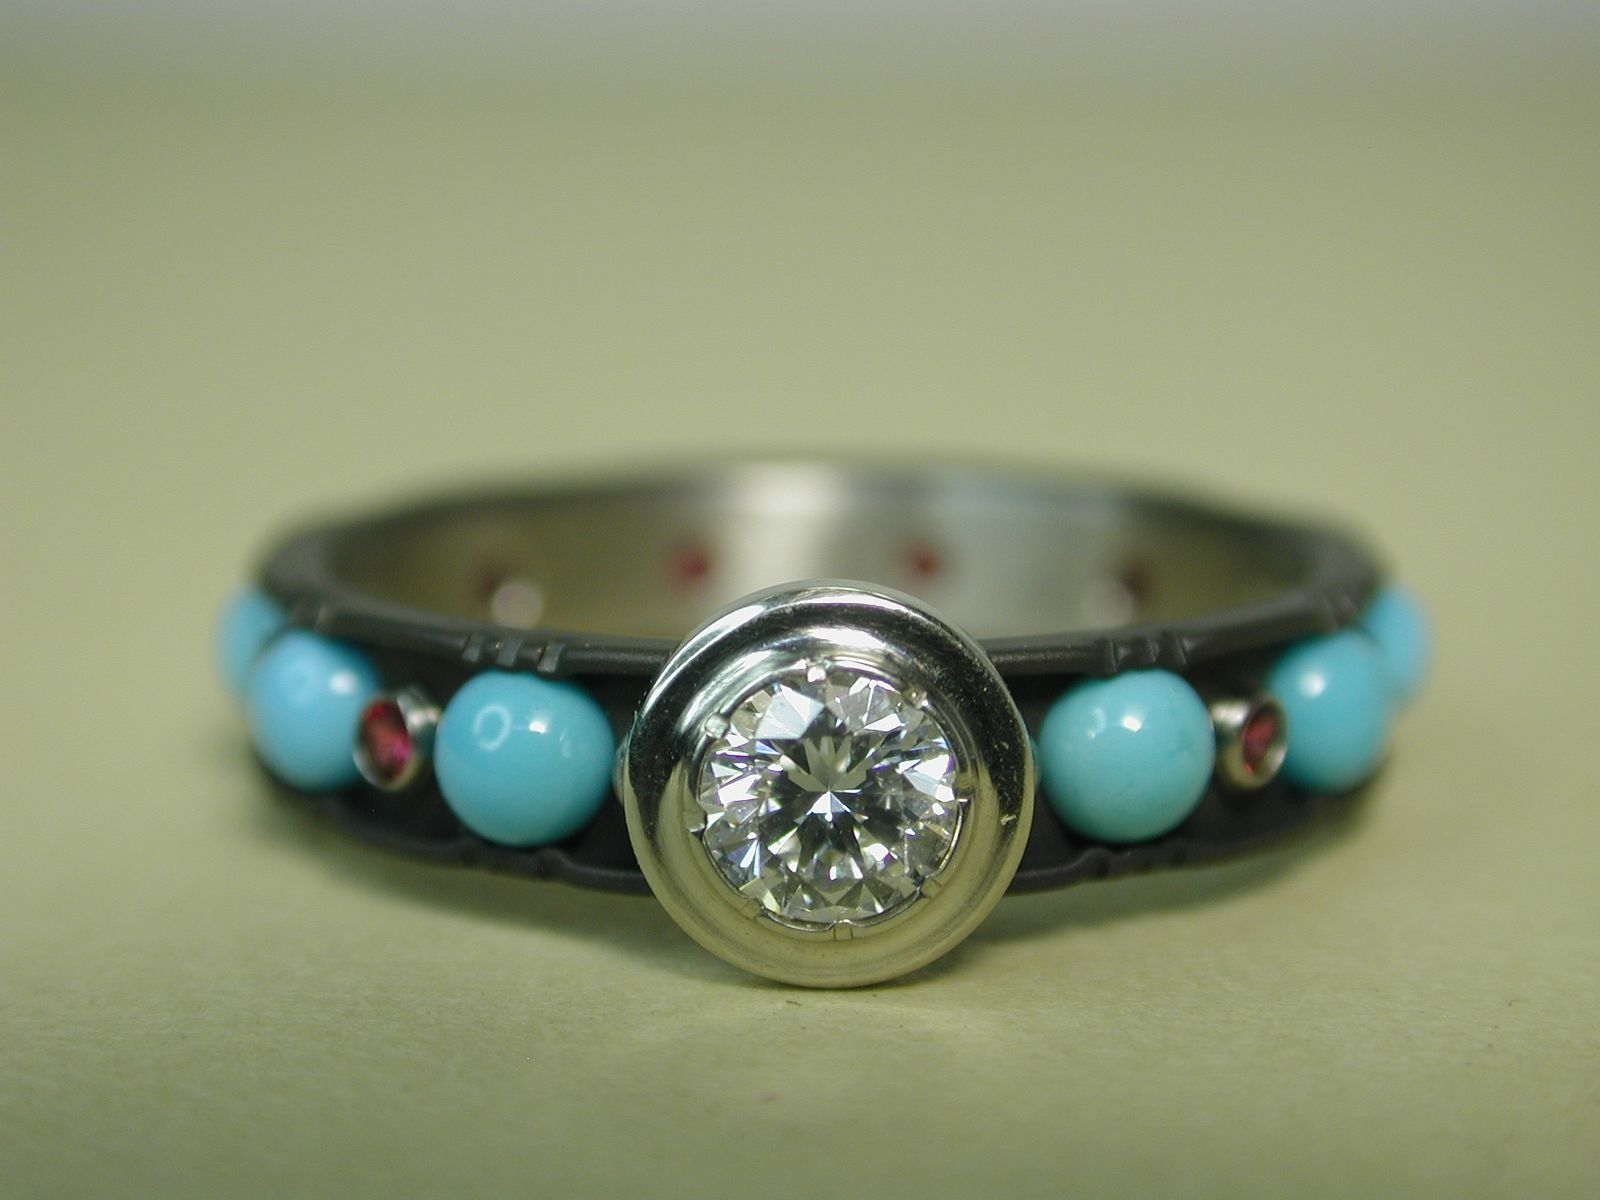 Custom Made Diamond Solitaire Ring On Anium Band With Turquoise And Rubies